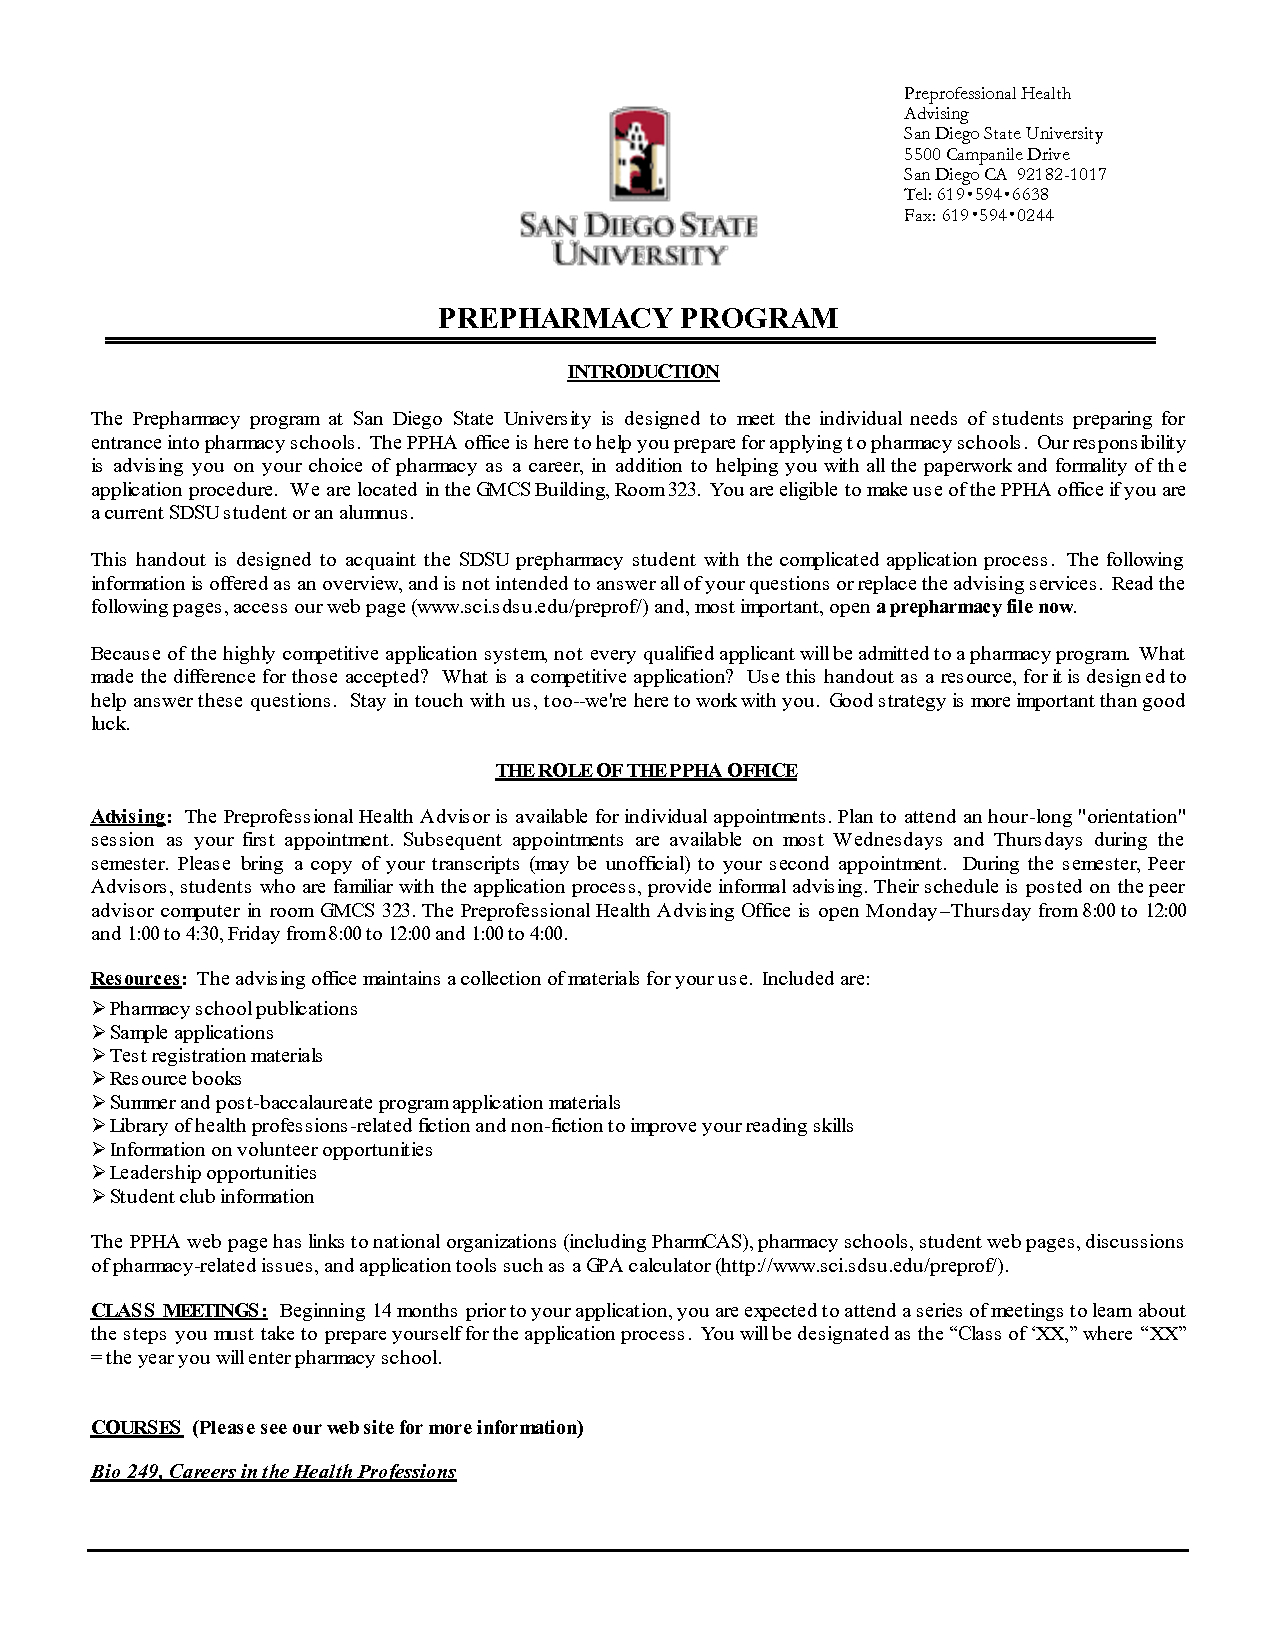 Template for Letter Of Recommendation for Medical School - Pharmacy School Essay Pharmacy School Essay Ideas for Othello